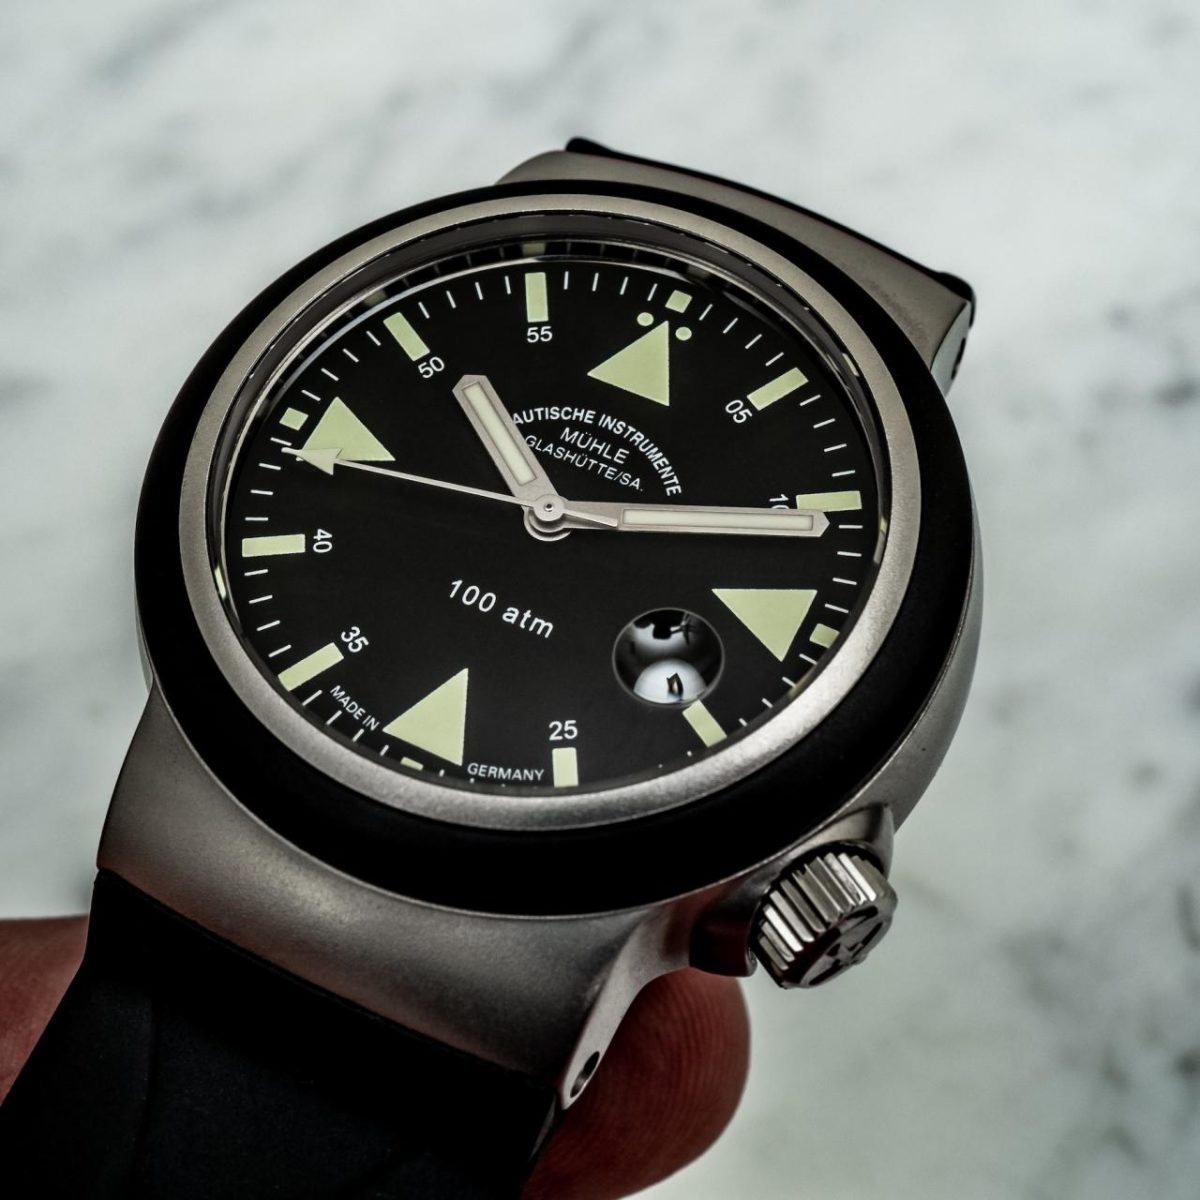 Mühle Glashütte S.A.R. Rescue Timer Replica Watches